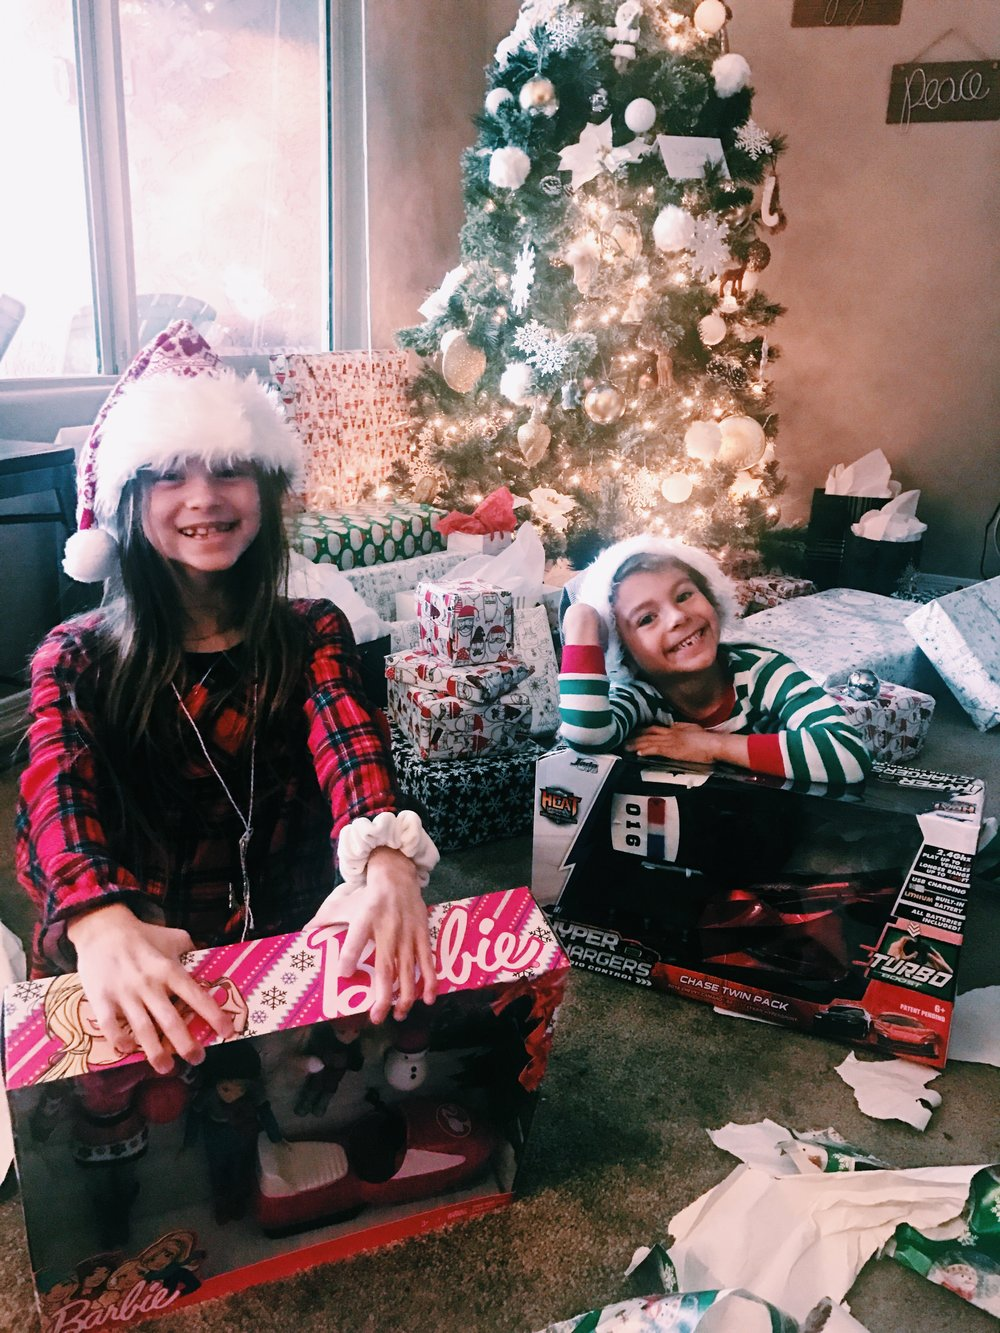 Christmas 2017 was interesting. Between Thanksgiving and Christmas there was Flu's going around like crazy and we were getting hit left and right. We survived it though and luckily Christmas Eve and Morning everyone was pretty much normal so we could enjoy the gift giving.